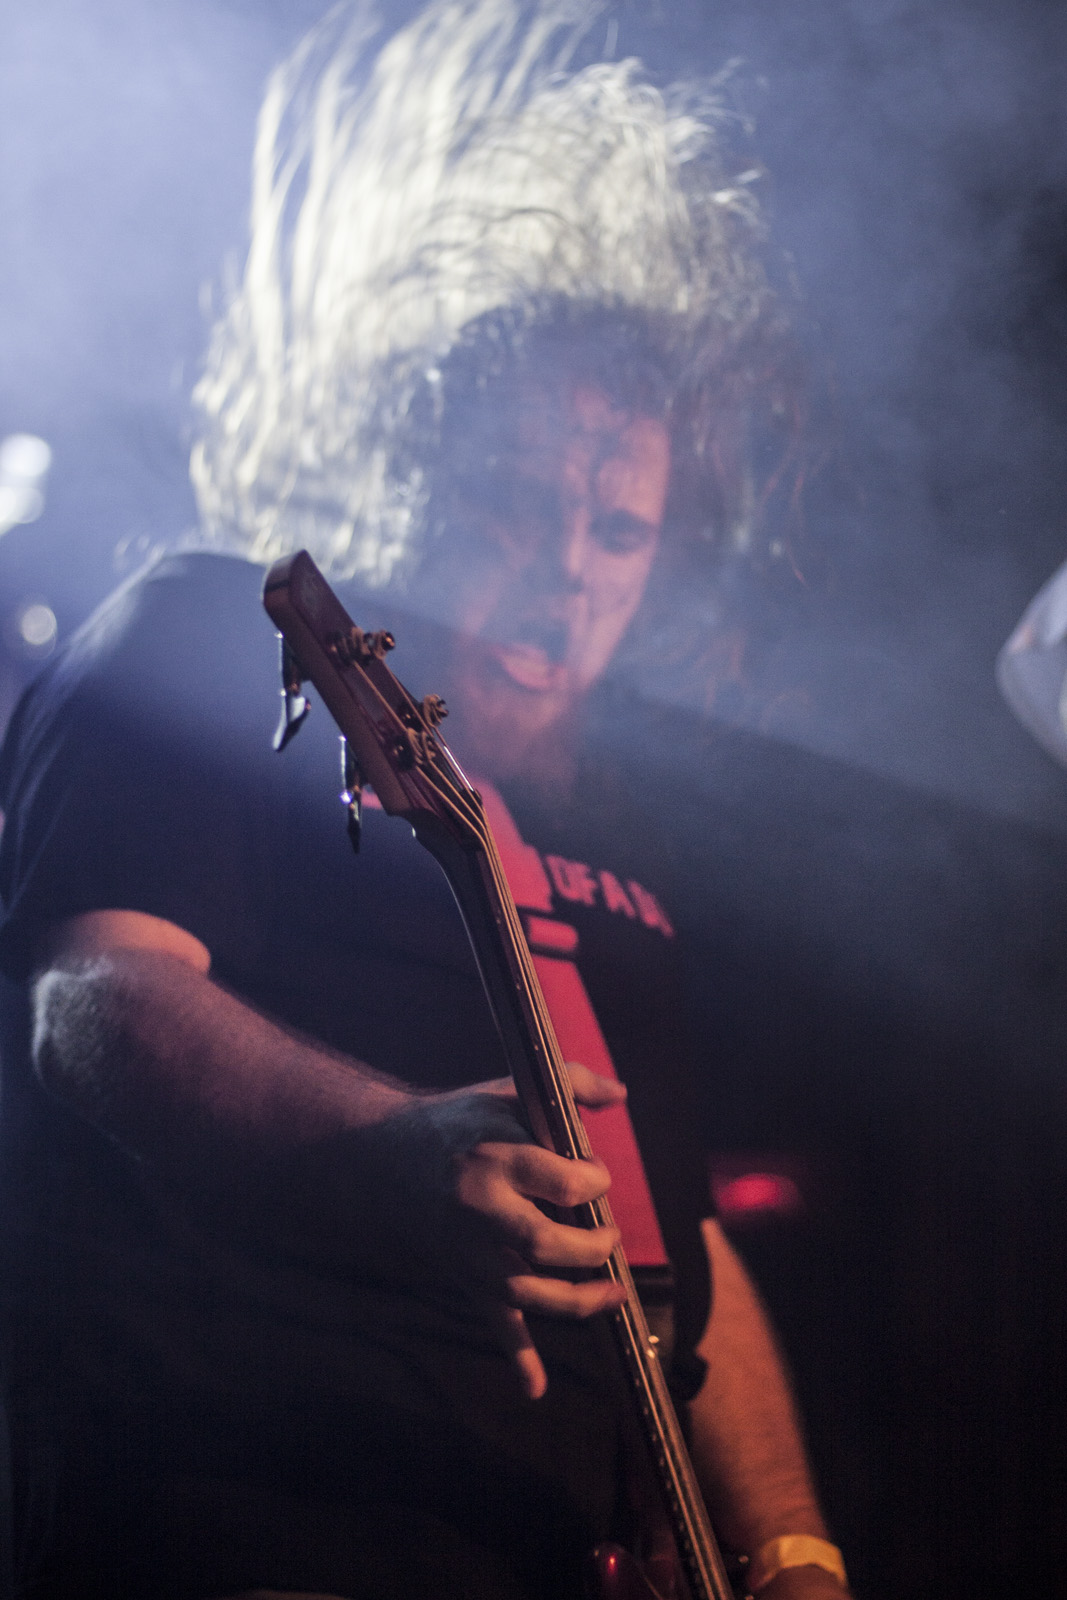 Bassist playing live